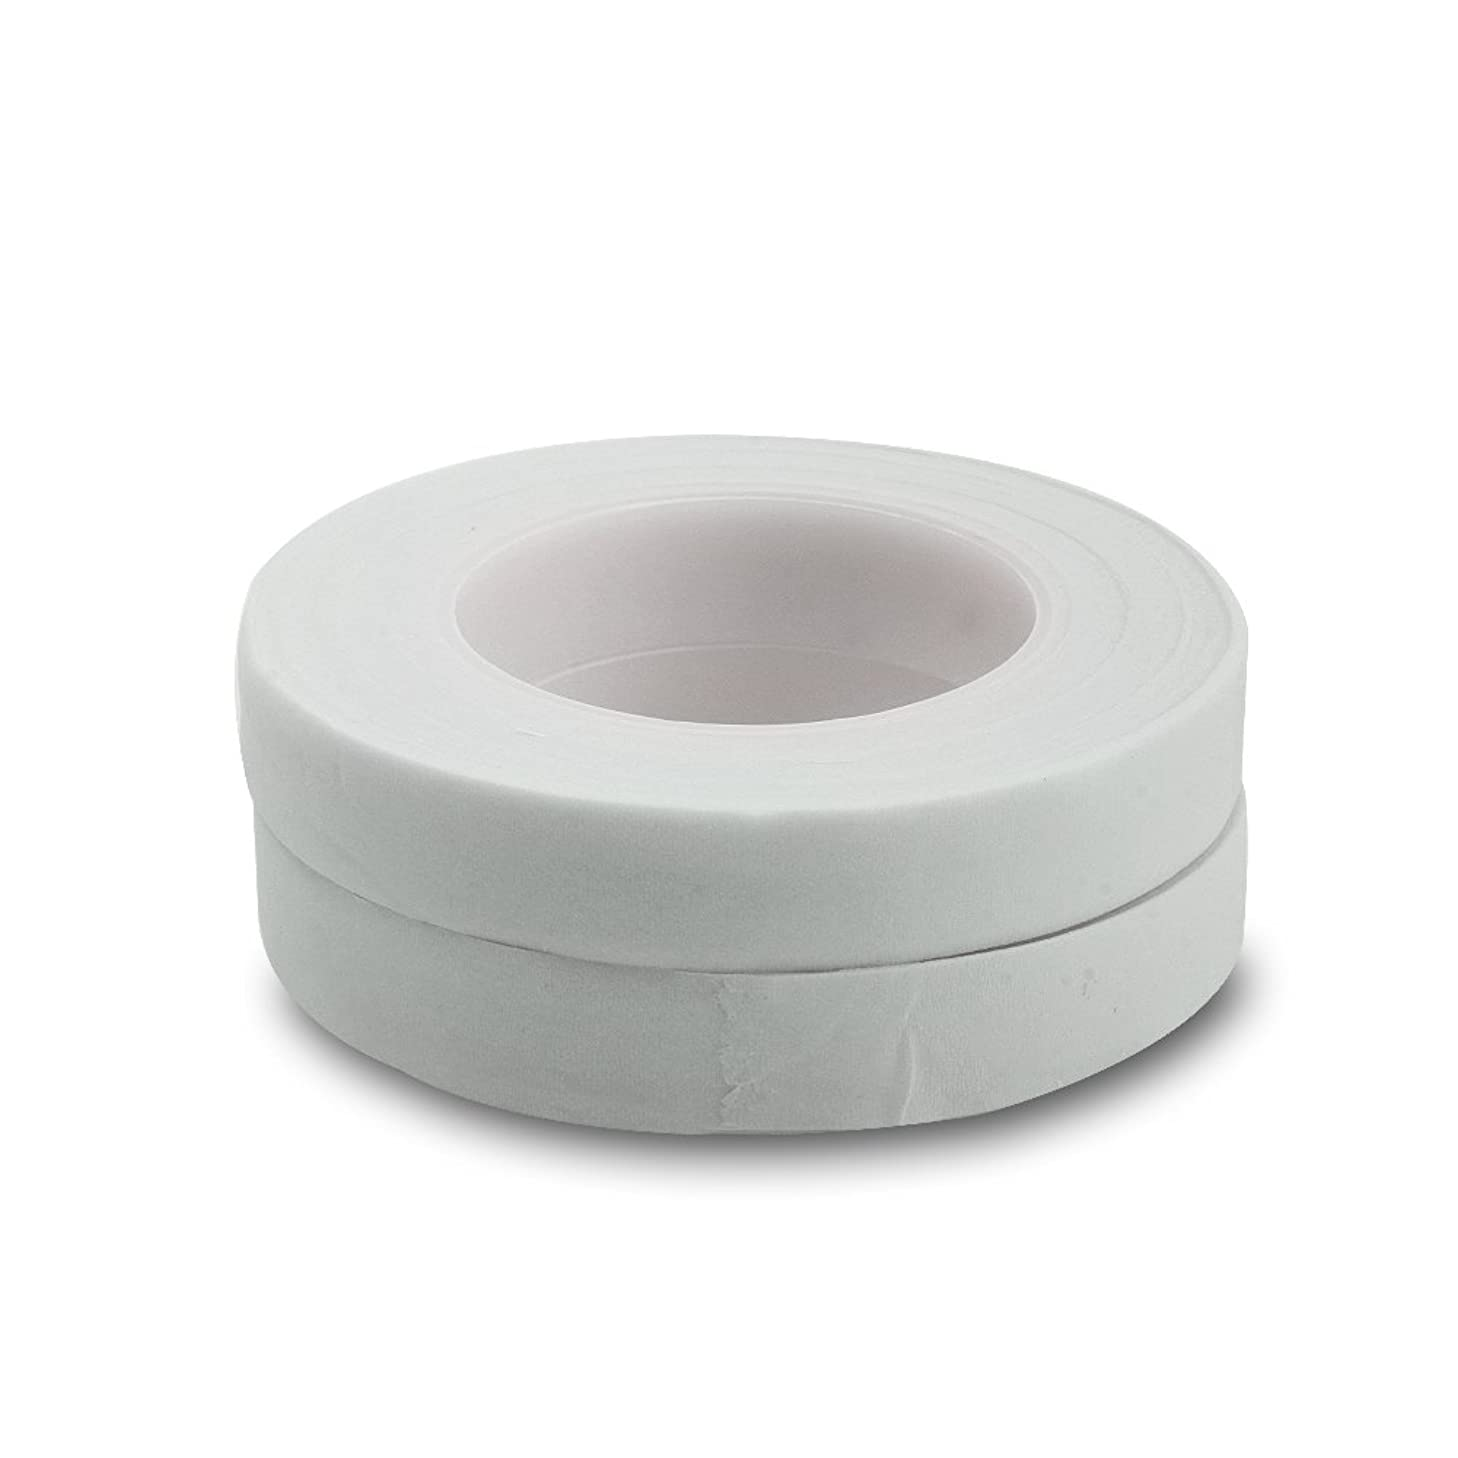 Topenca Supplies Floral Tape White, 1/2 Inch Wide x 30 Yards, 12 Pack, Ideal for Bouquet Stem Wrap Floral Arranging and Craft Projects